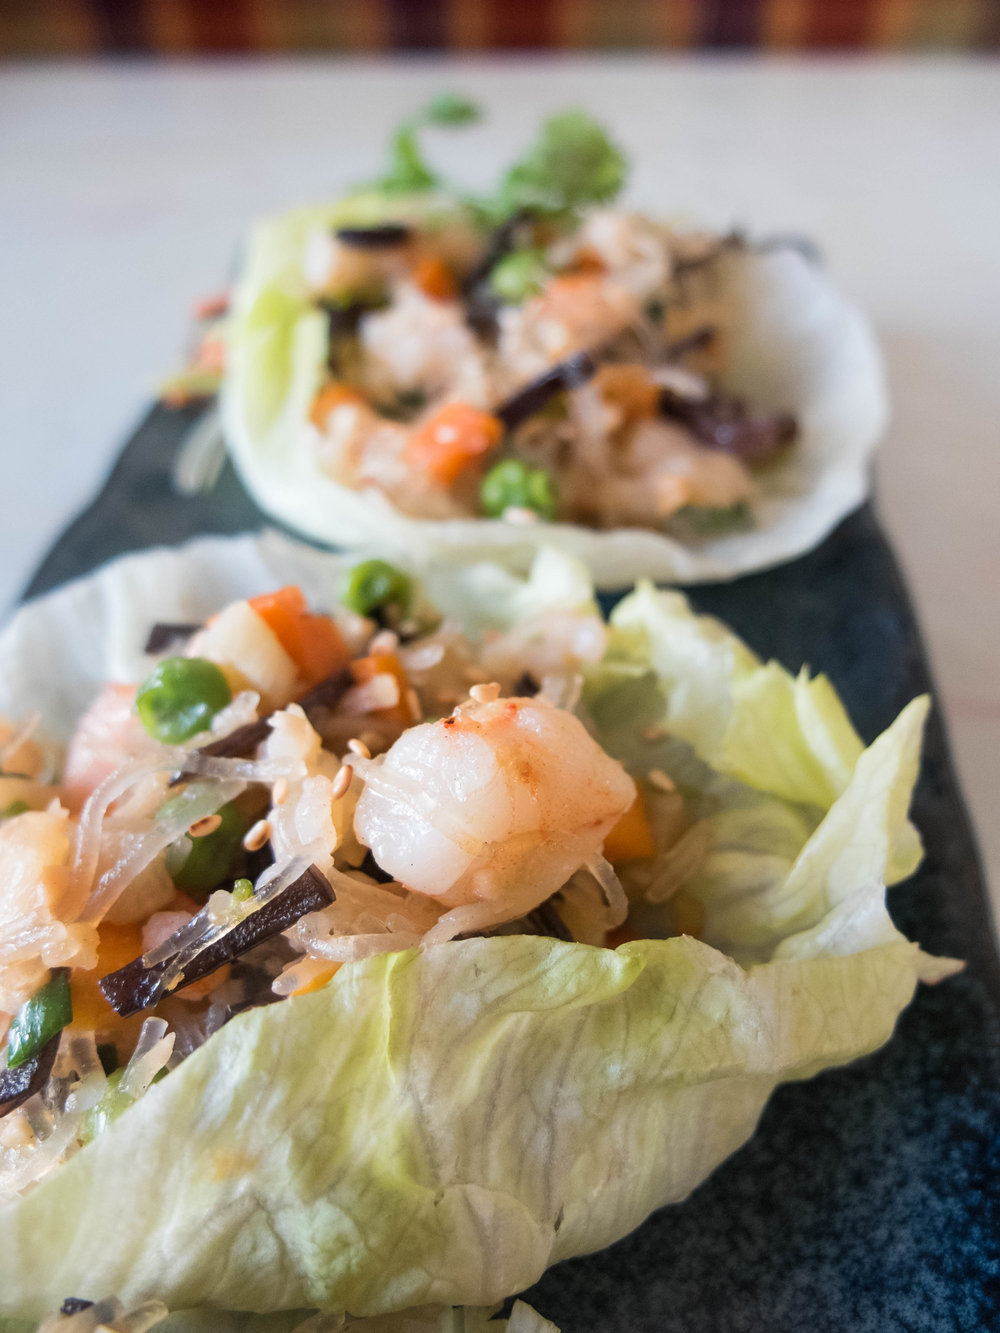 Lettuce bowls of a Malaysian mix